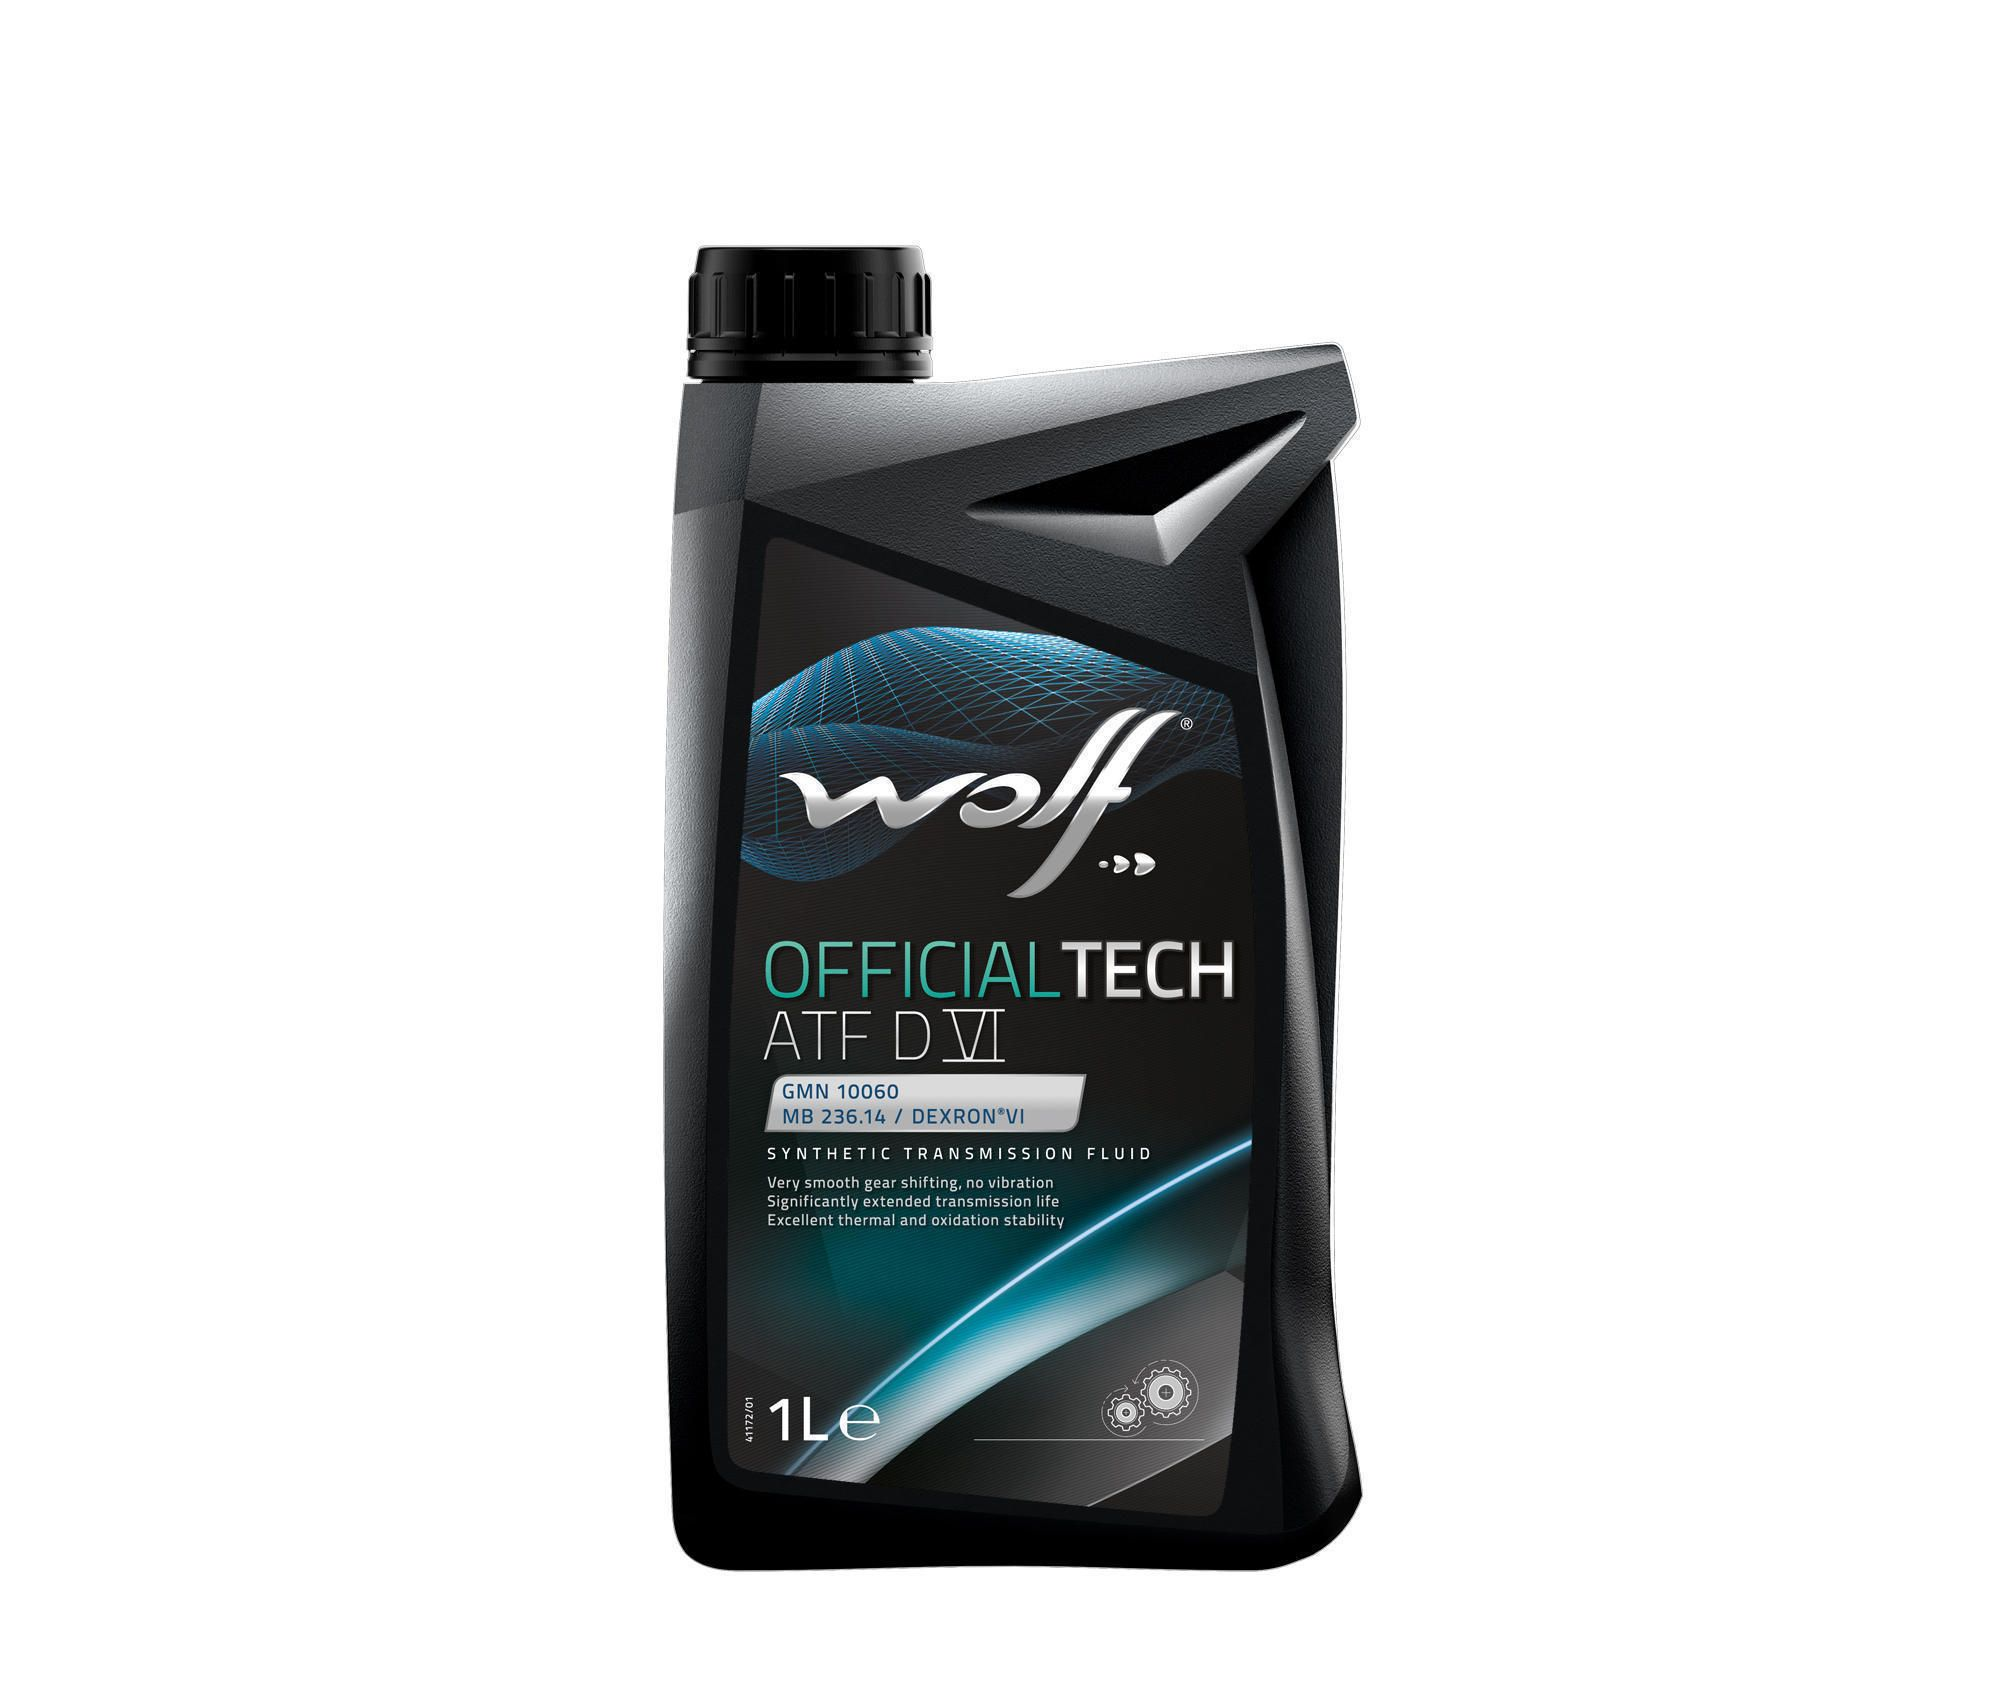 Wolf OfficialTech ATF DVI Fully Synthetic Transmission Fluid - 1 L